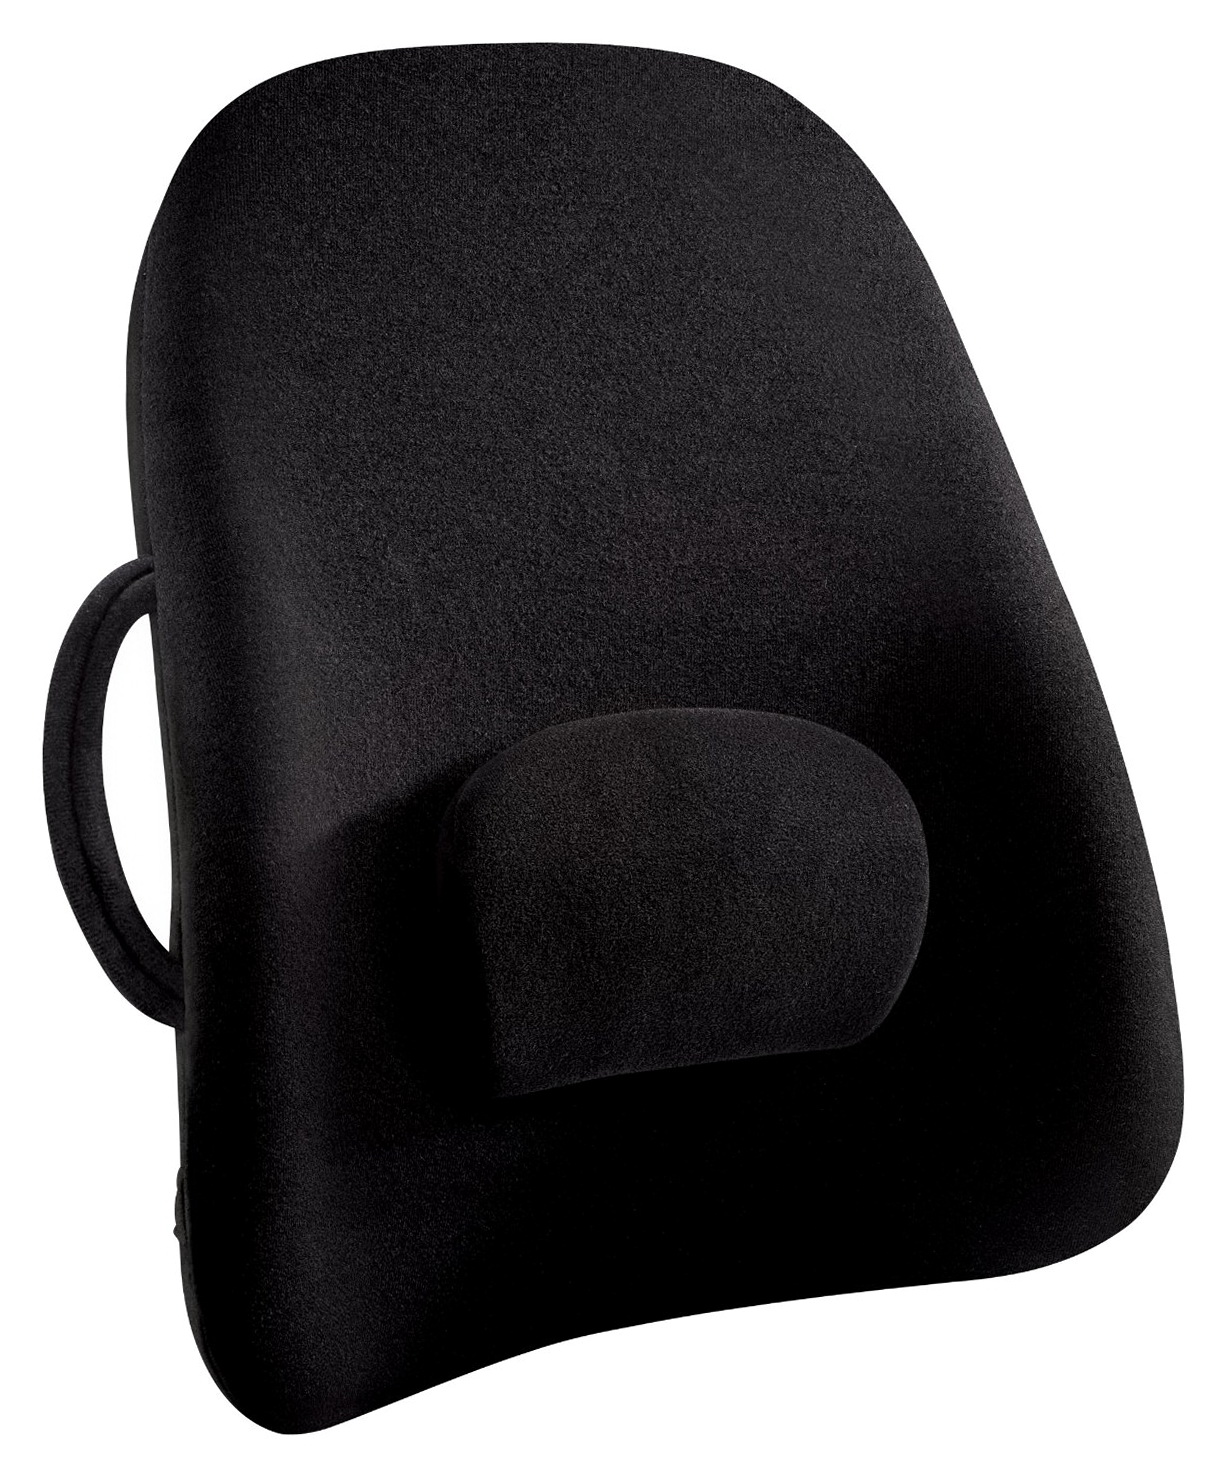 Wedge Seat Cushion For Office Chair Home Design Ideas